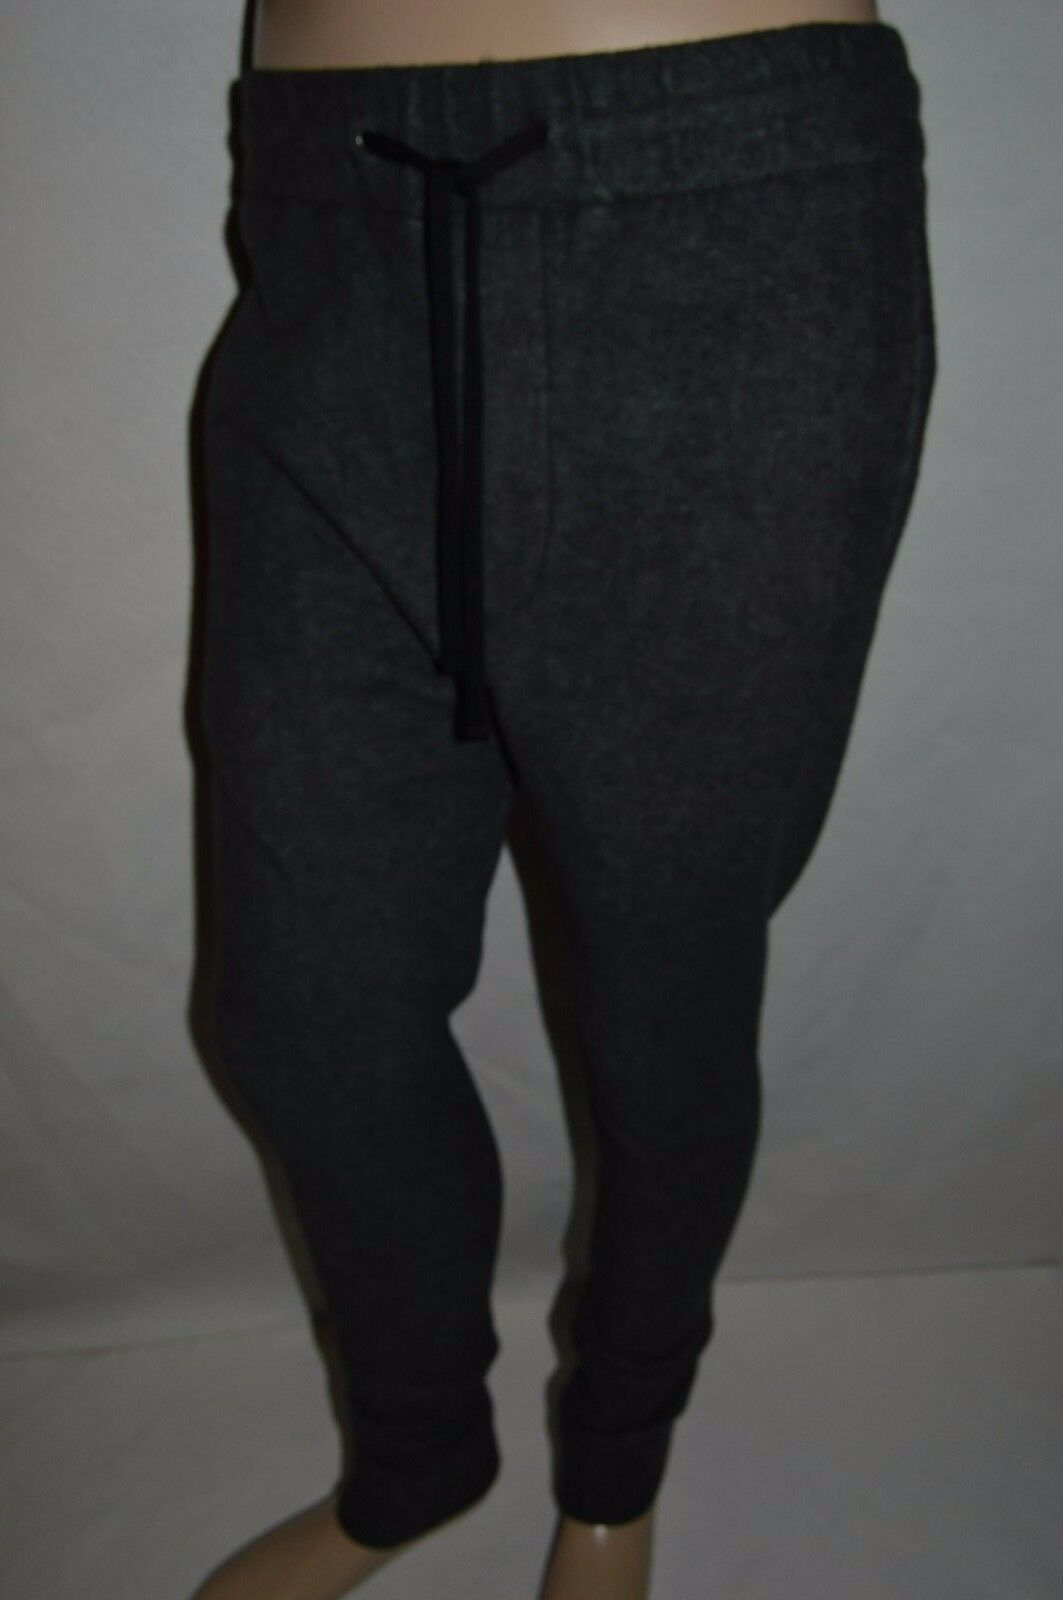 JAMES PERSE Man's Draw String SWEAT Comfort Pants NEW Size 3 Large Retail